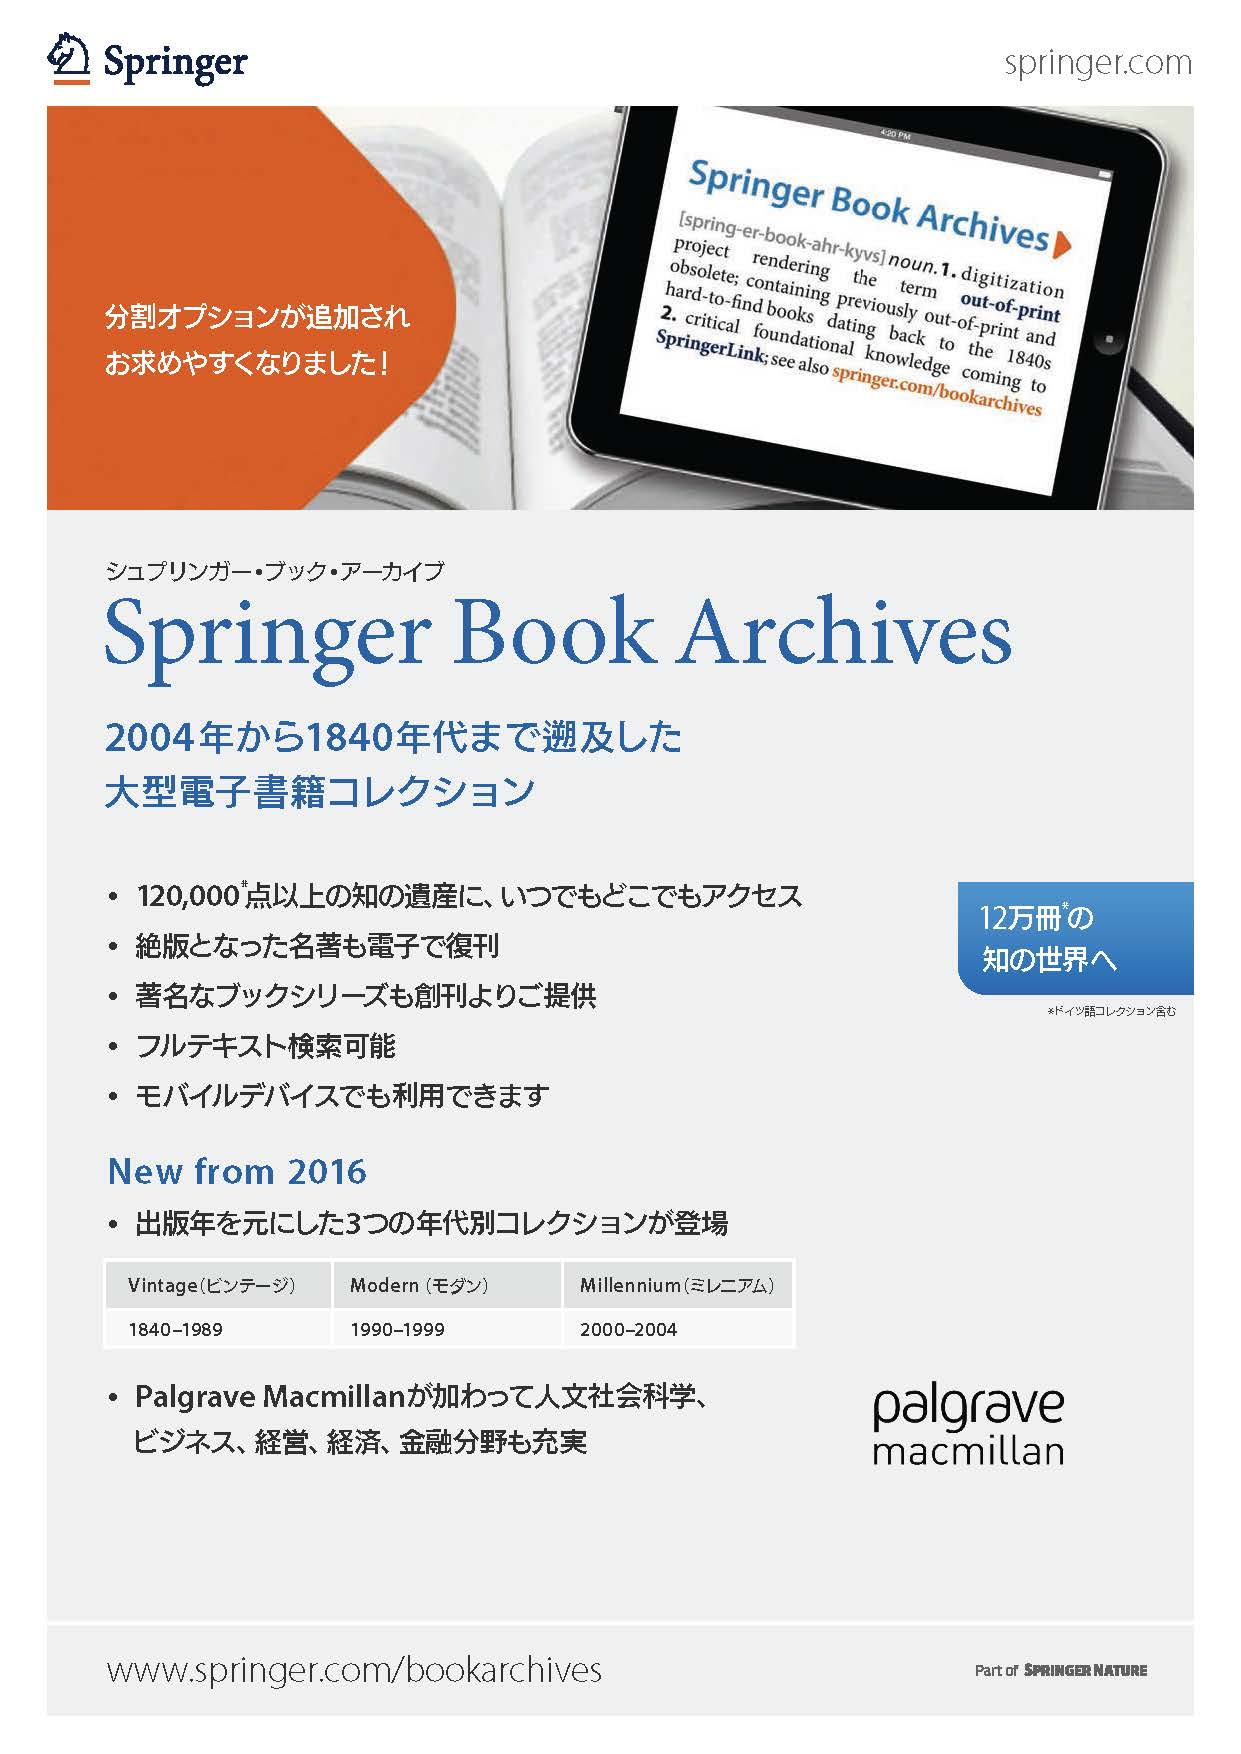 Springer Book Archivesパンフレット